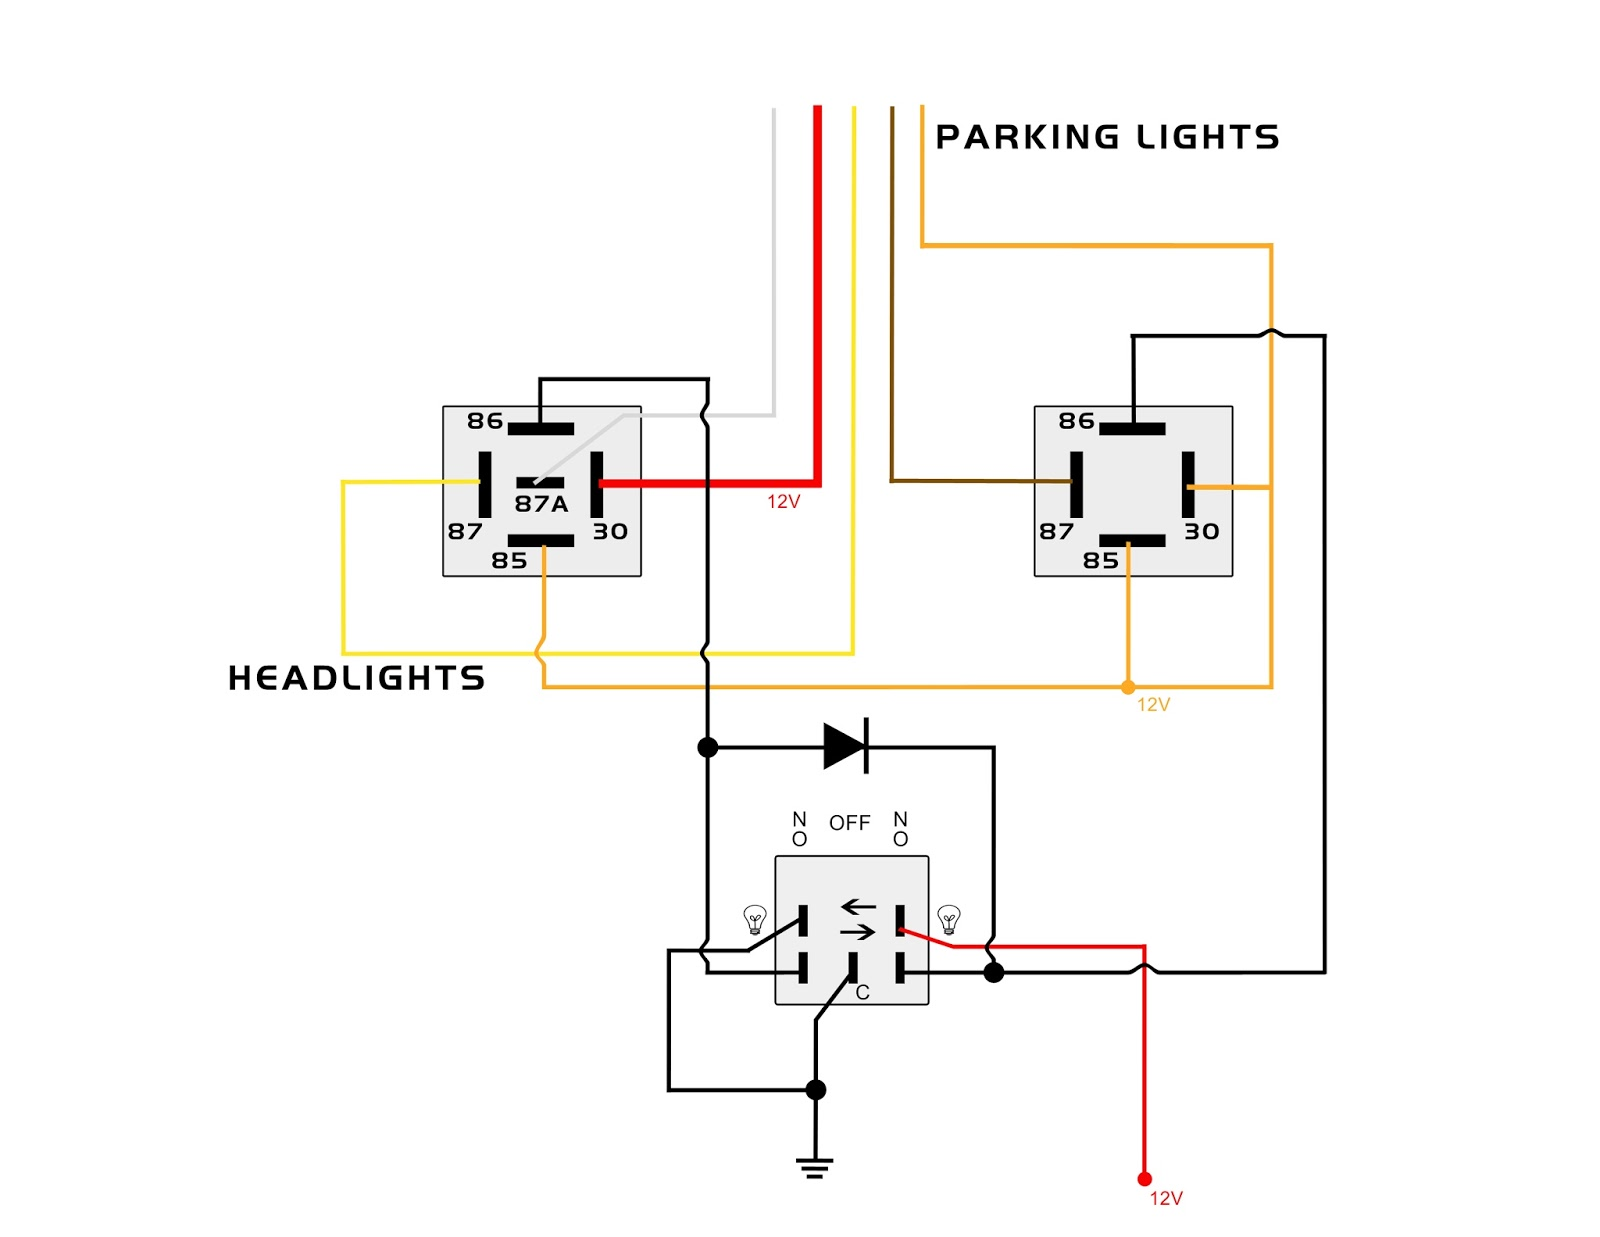 saab lights wiring diagram wiring diagram rh blaknwyt co Saab Headlight Replacement saab 93 headlight diagram